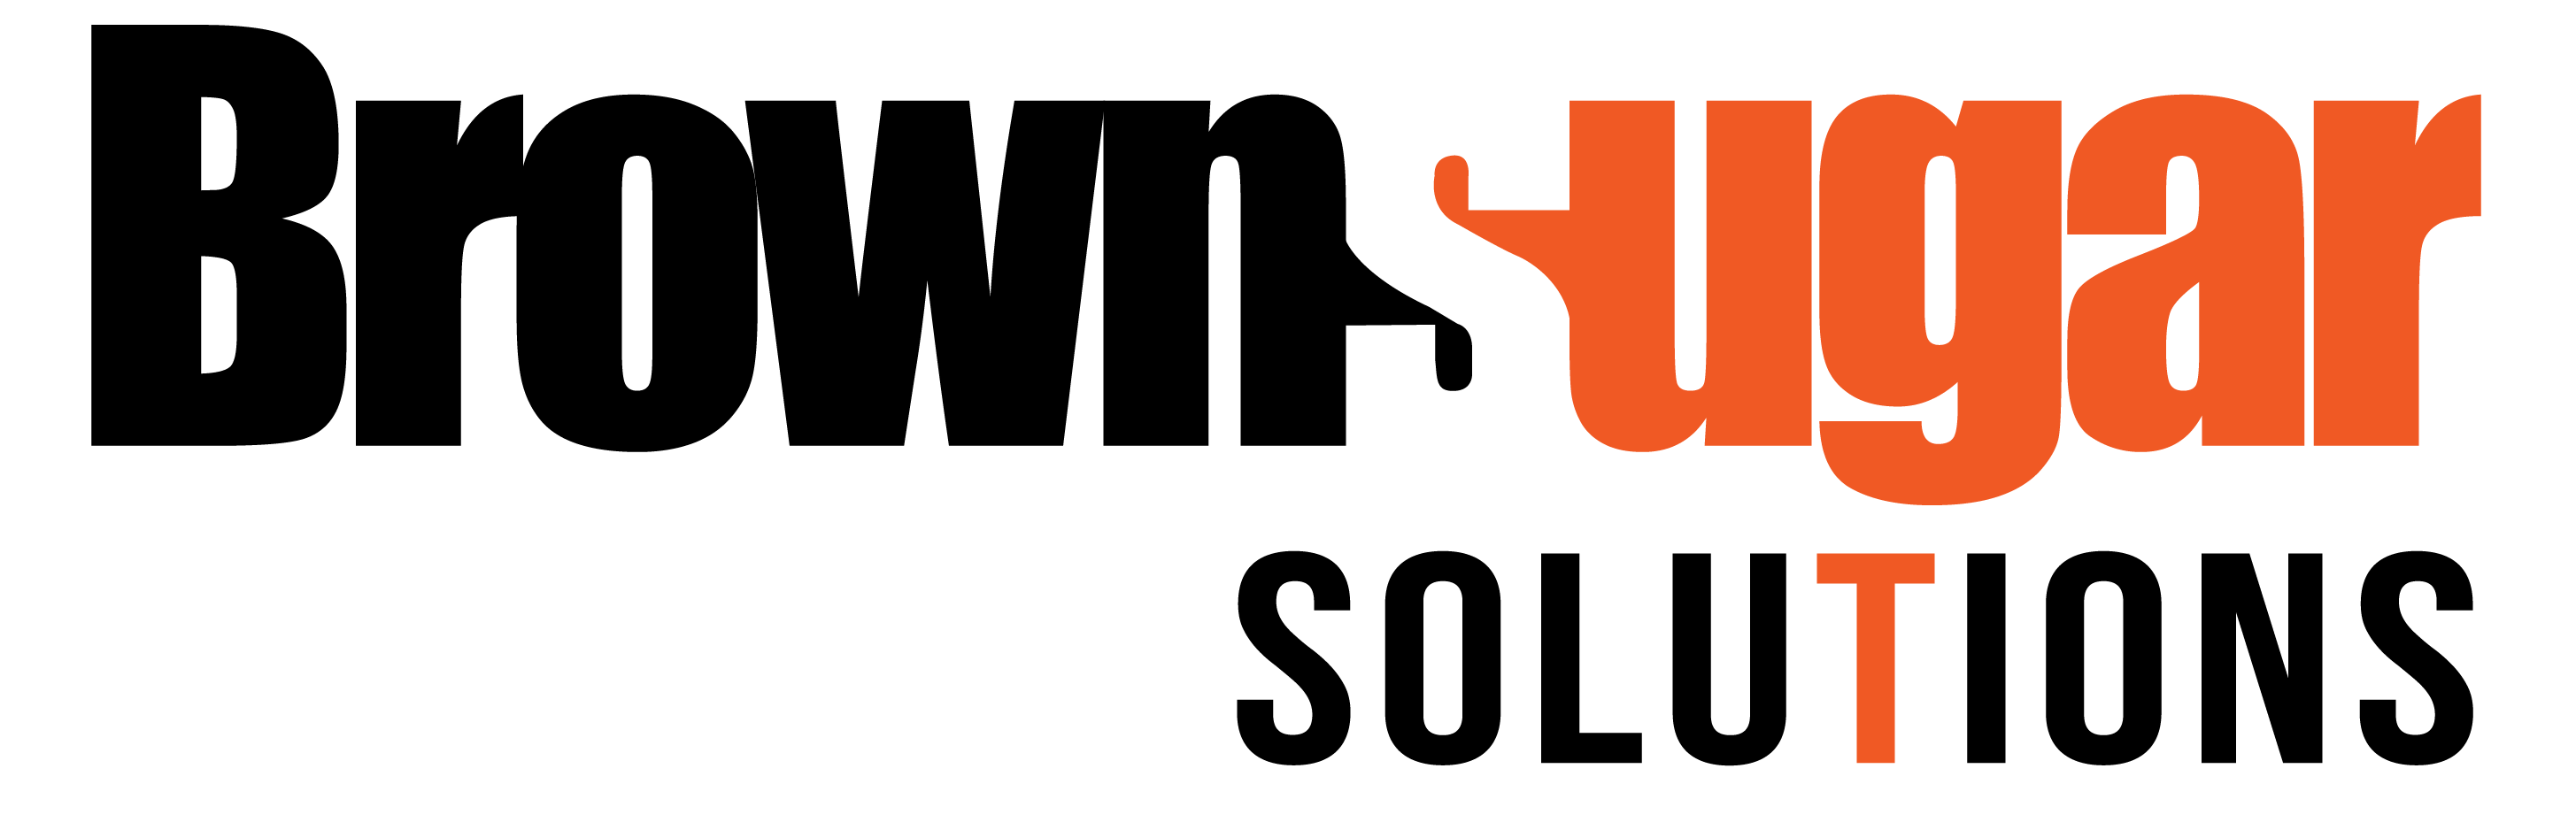 BrownSugar Solutions Wordmark